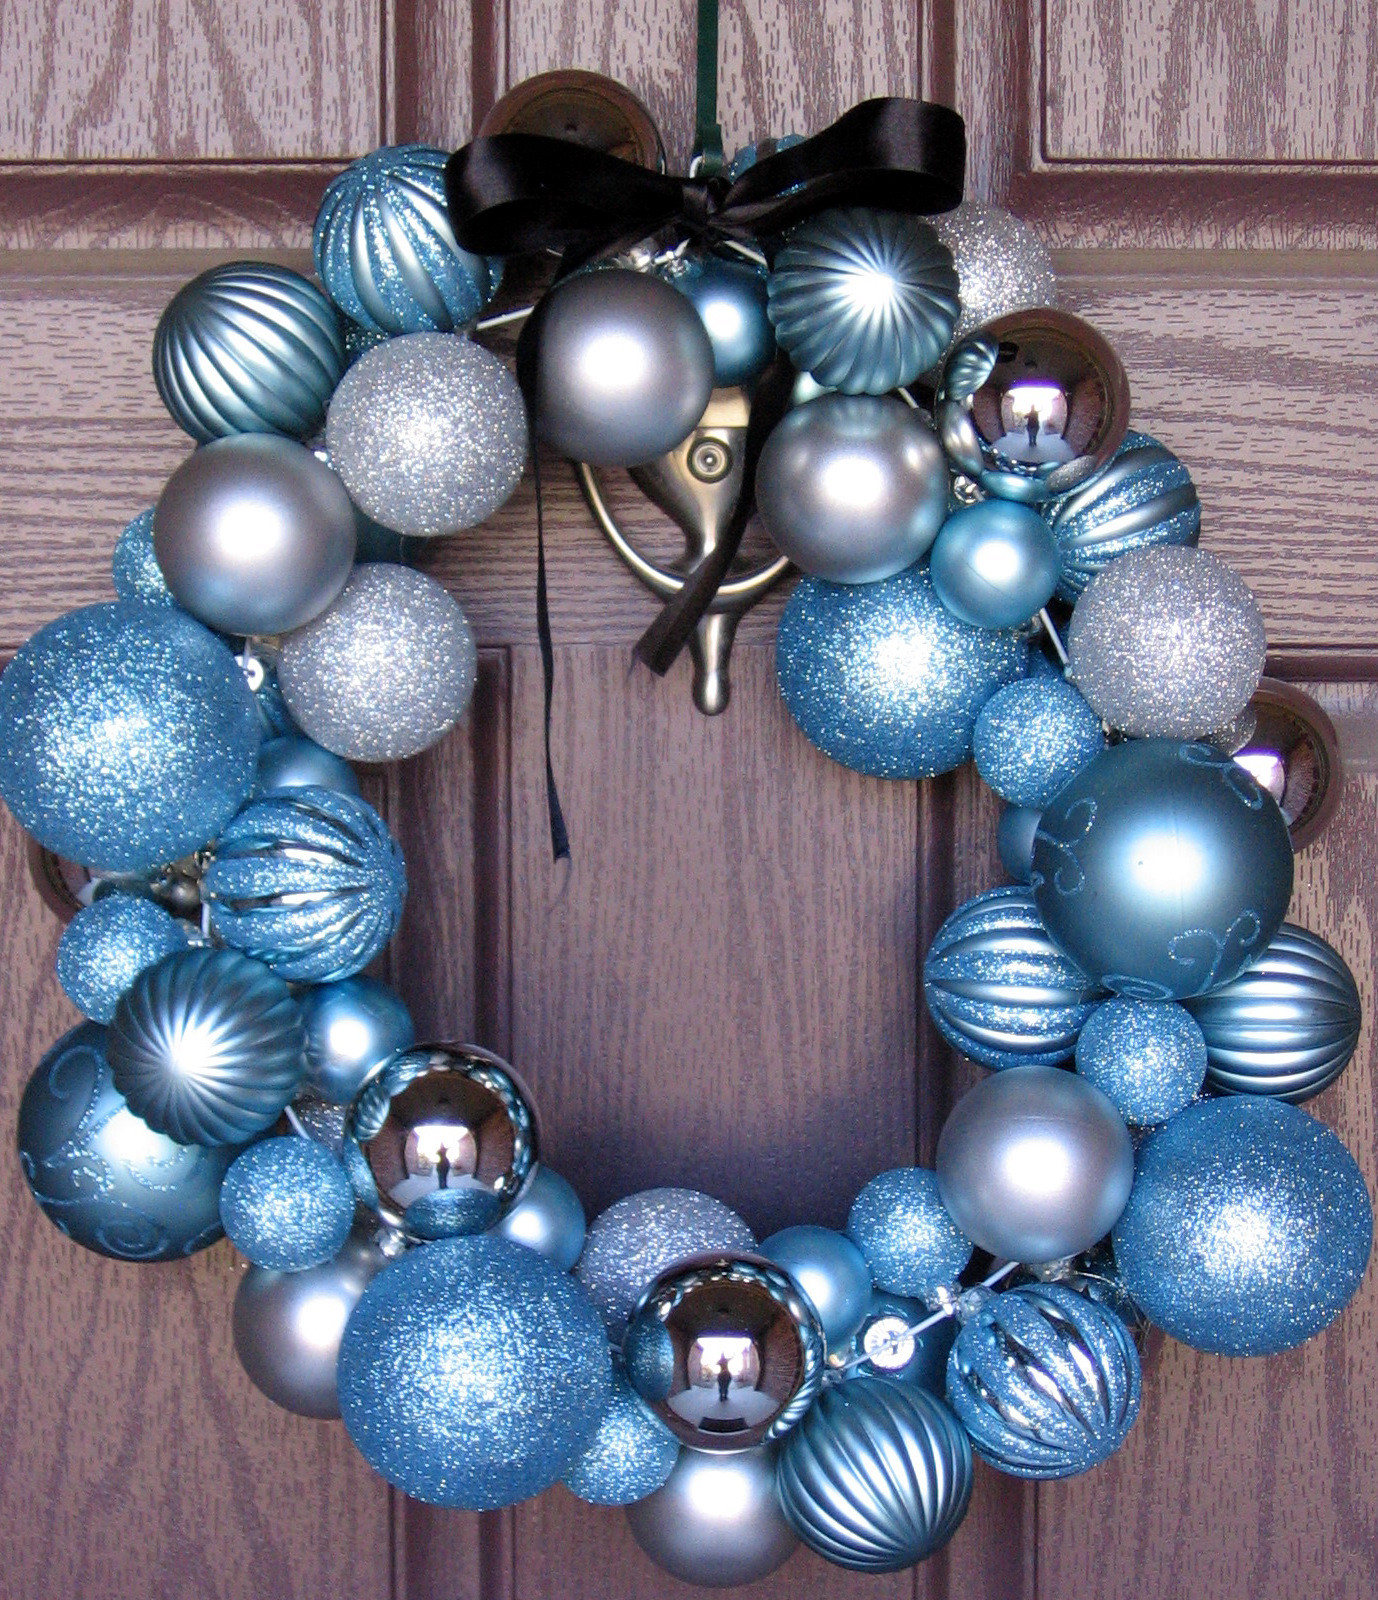 Best ideas about DIY Ornament Wreath . Save or Pin 3 Little Chicks DIY Winter Ornament Wreath Now.